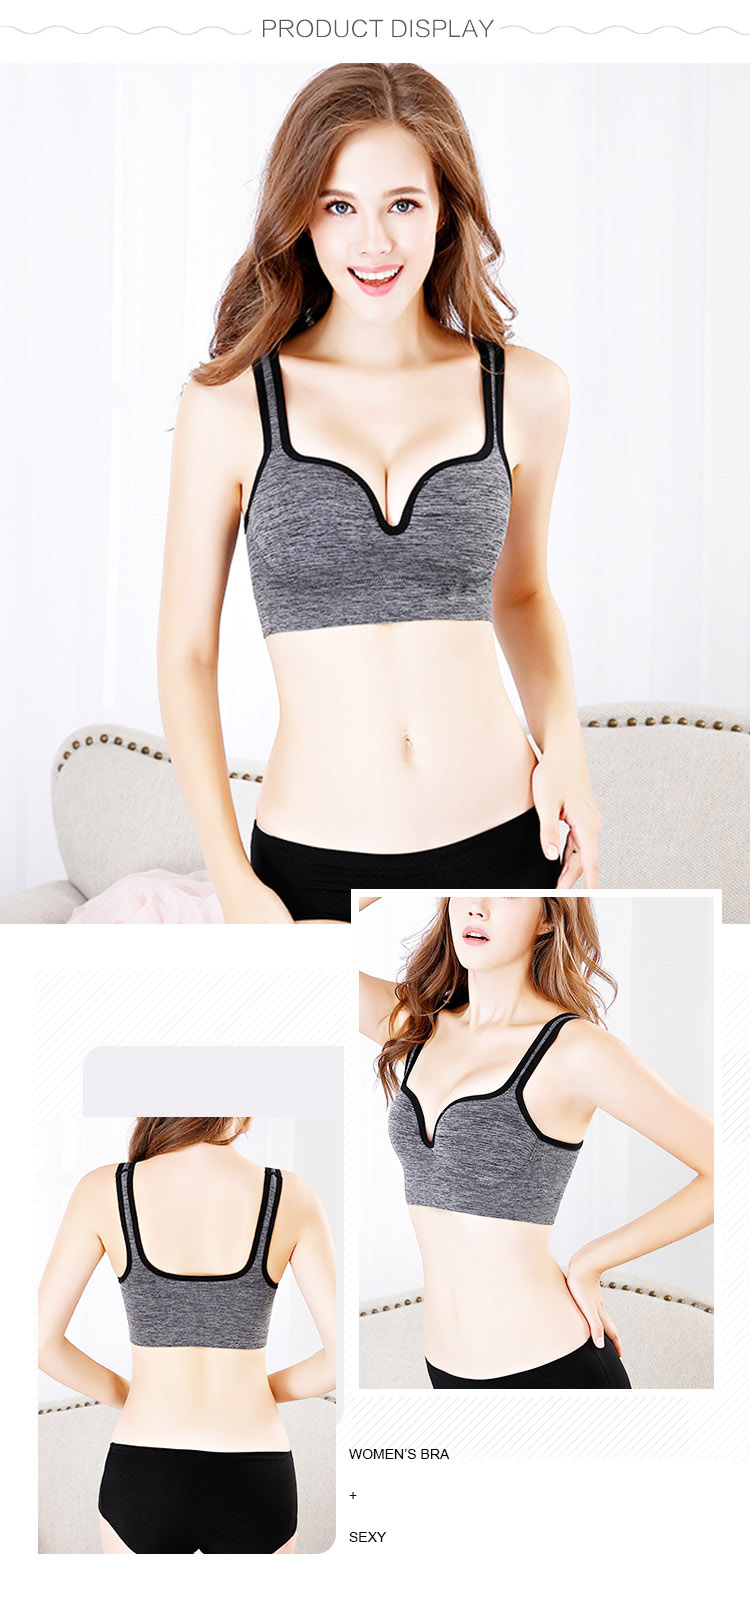 Women Sport Bra Product Display